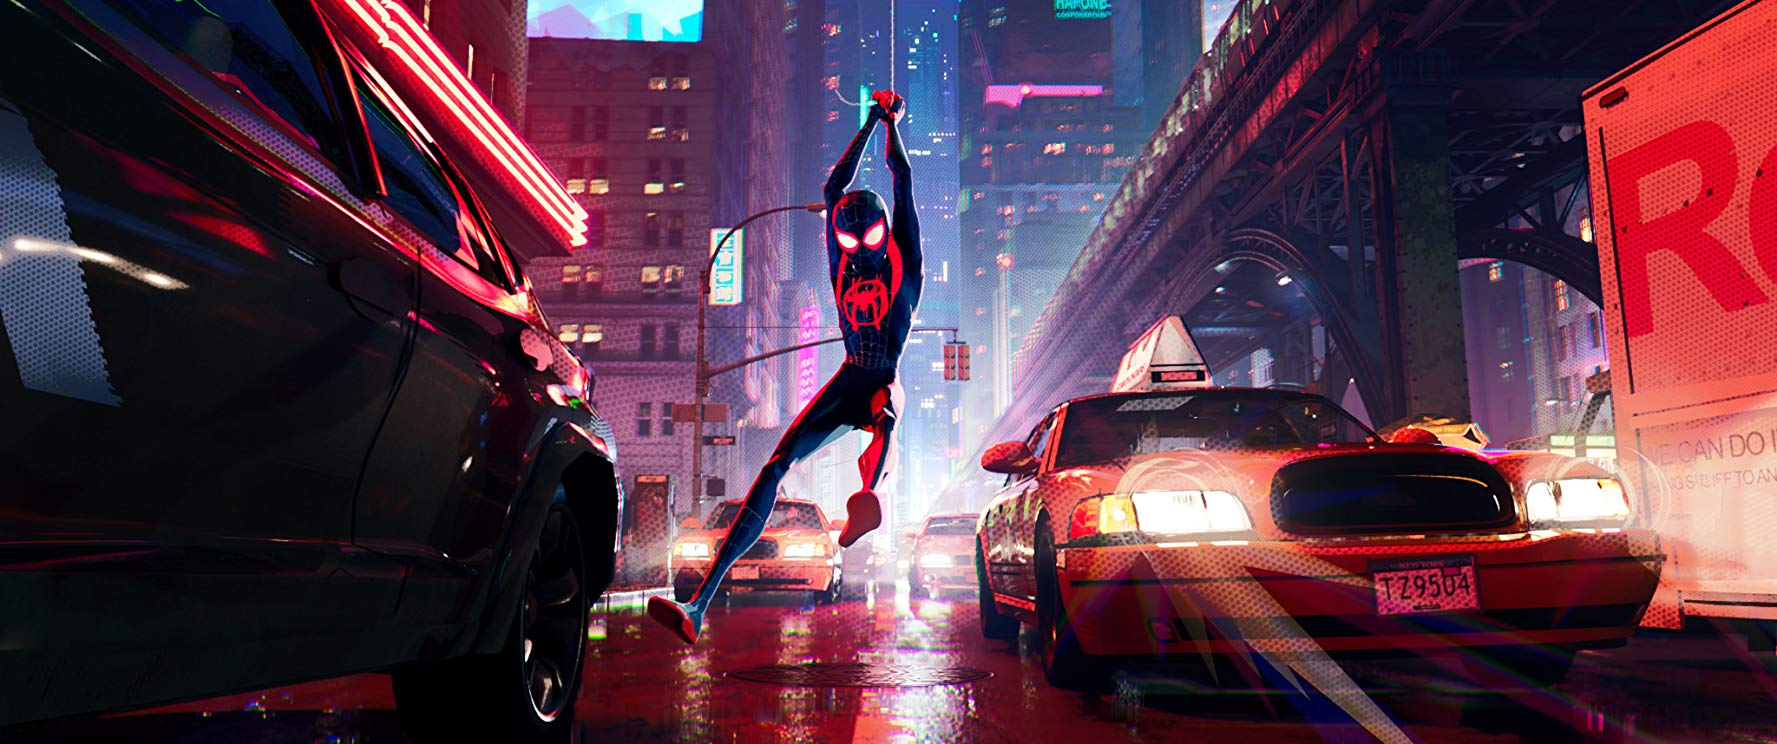 Spider-Man: Into the Spiderverse Backdrop